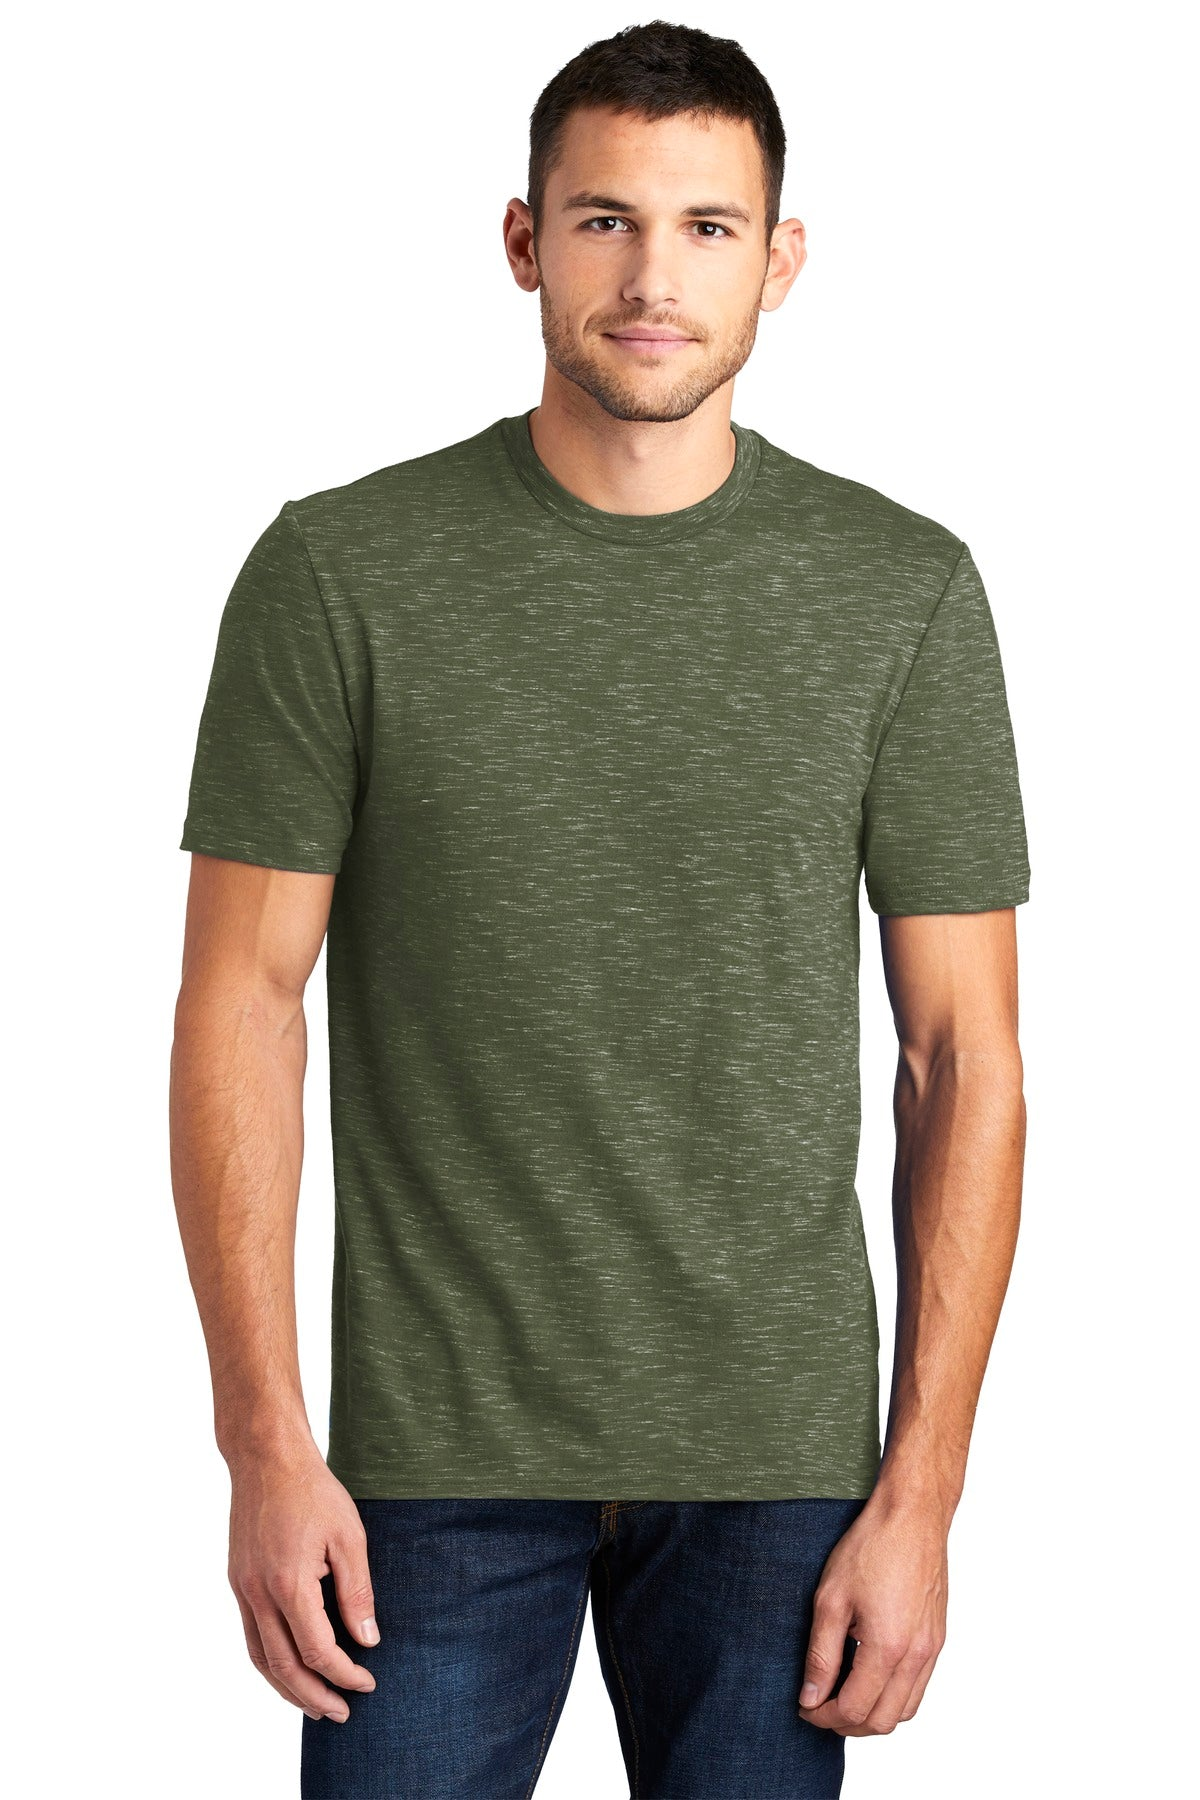 District DT564 Medal Tee - Olive - HIT A Double